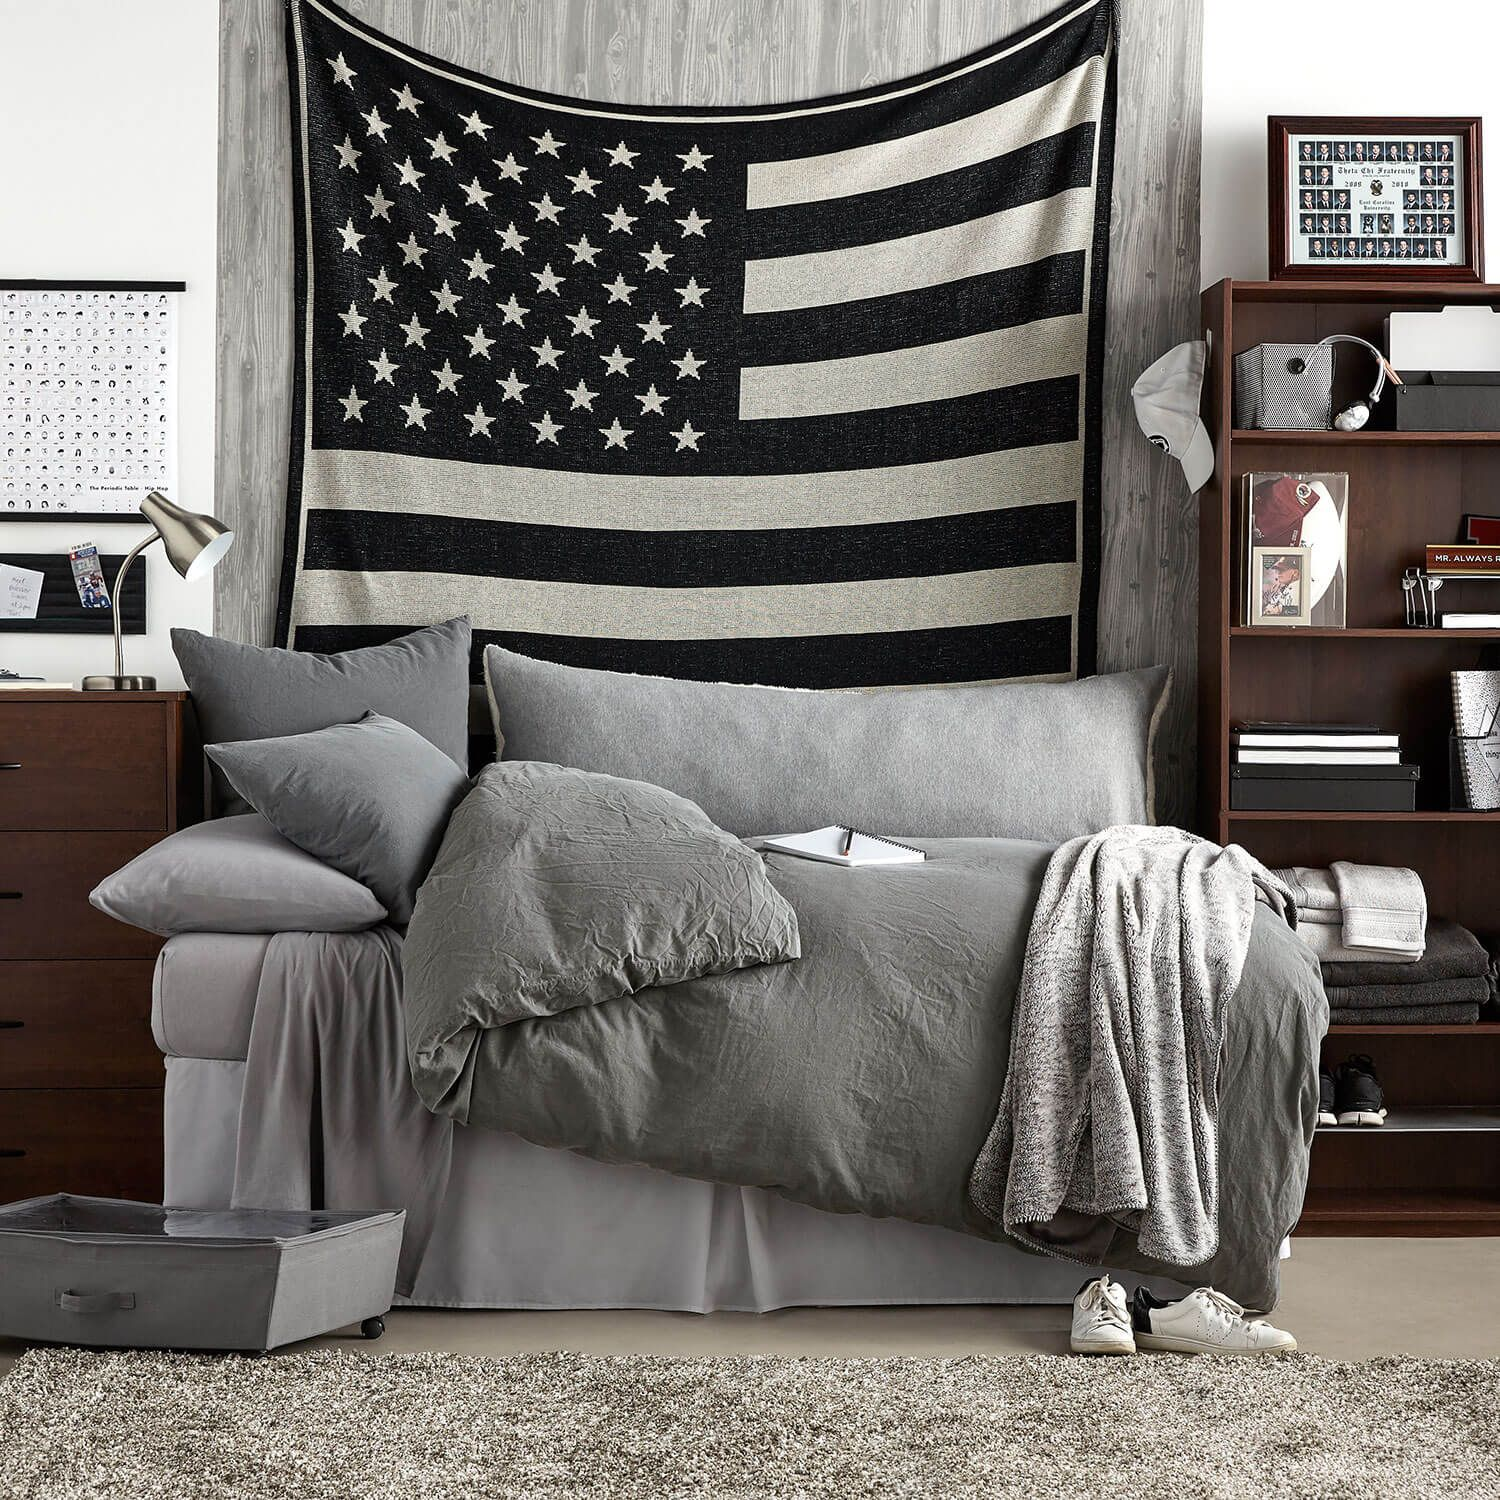 Dormiguy Ludlow Room // shop to get this look